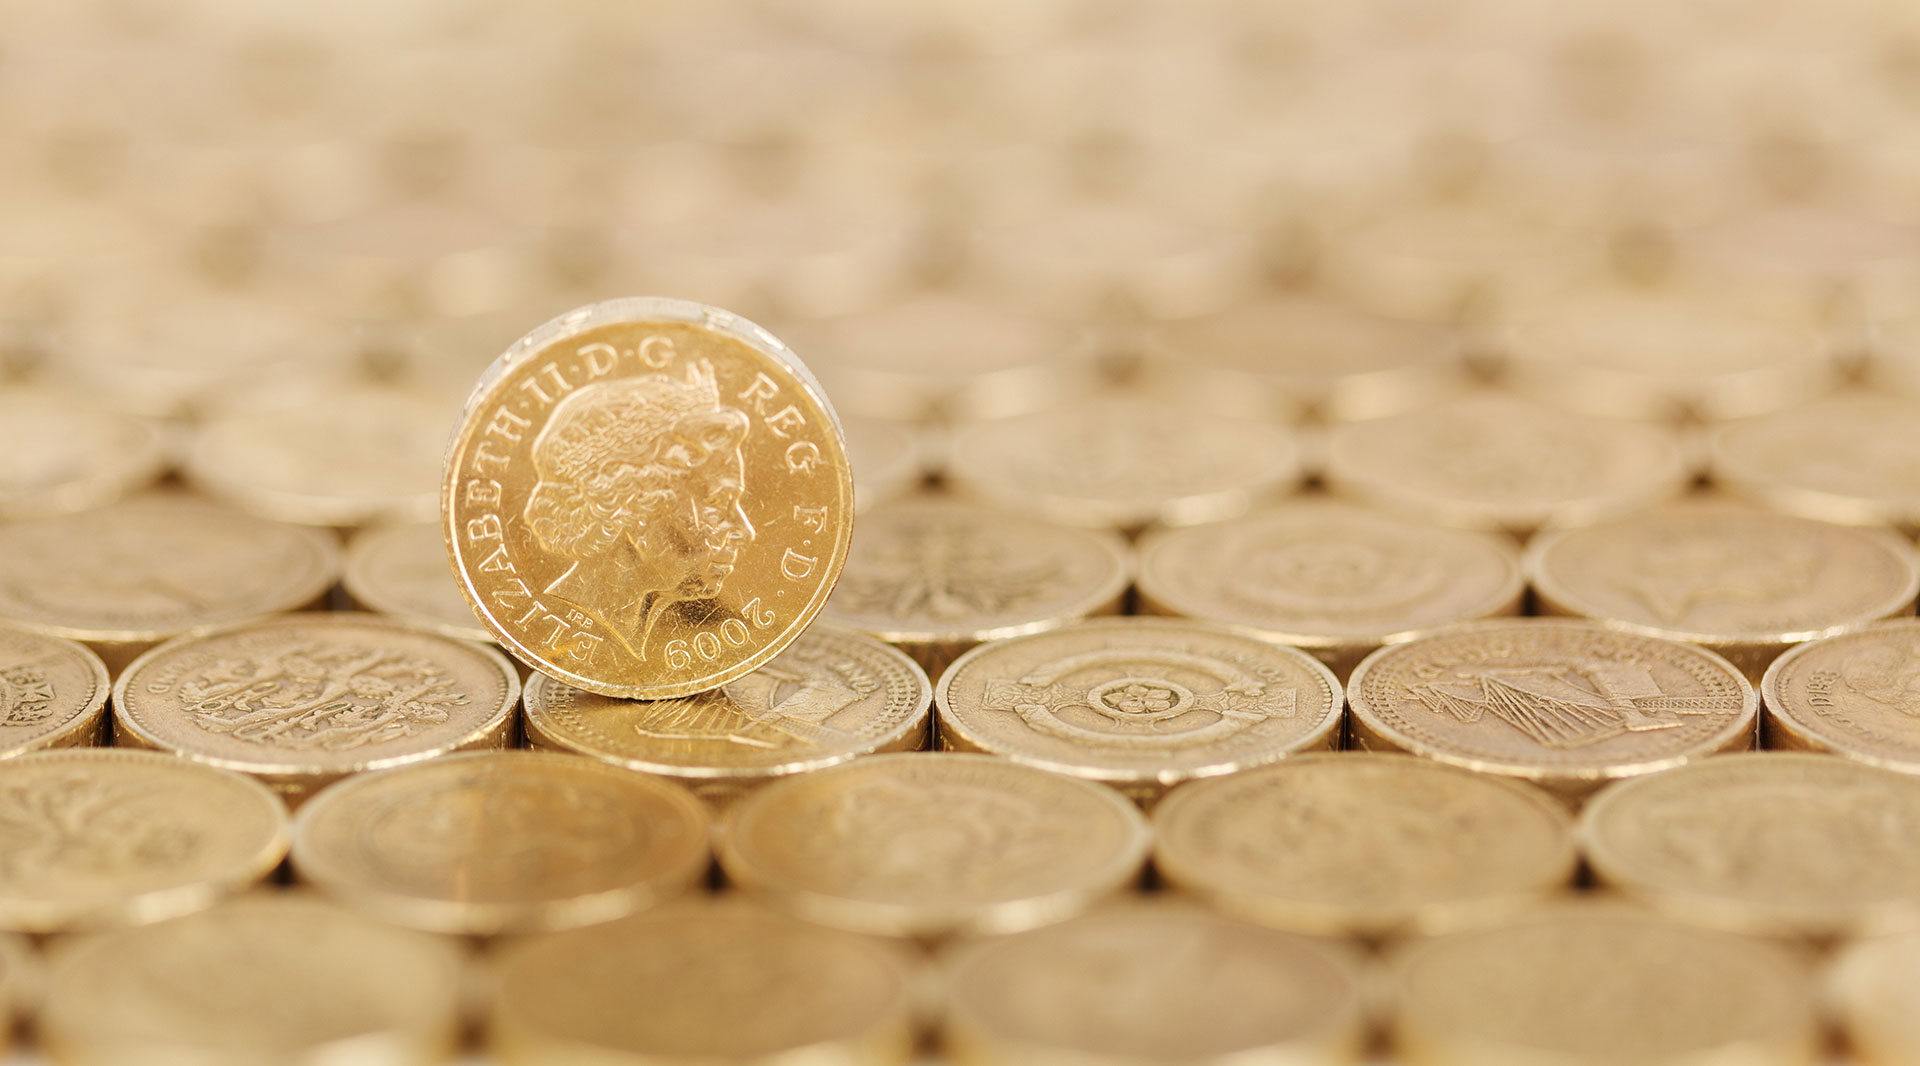 Pound Coin on its side